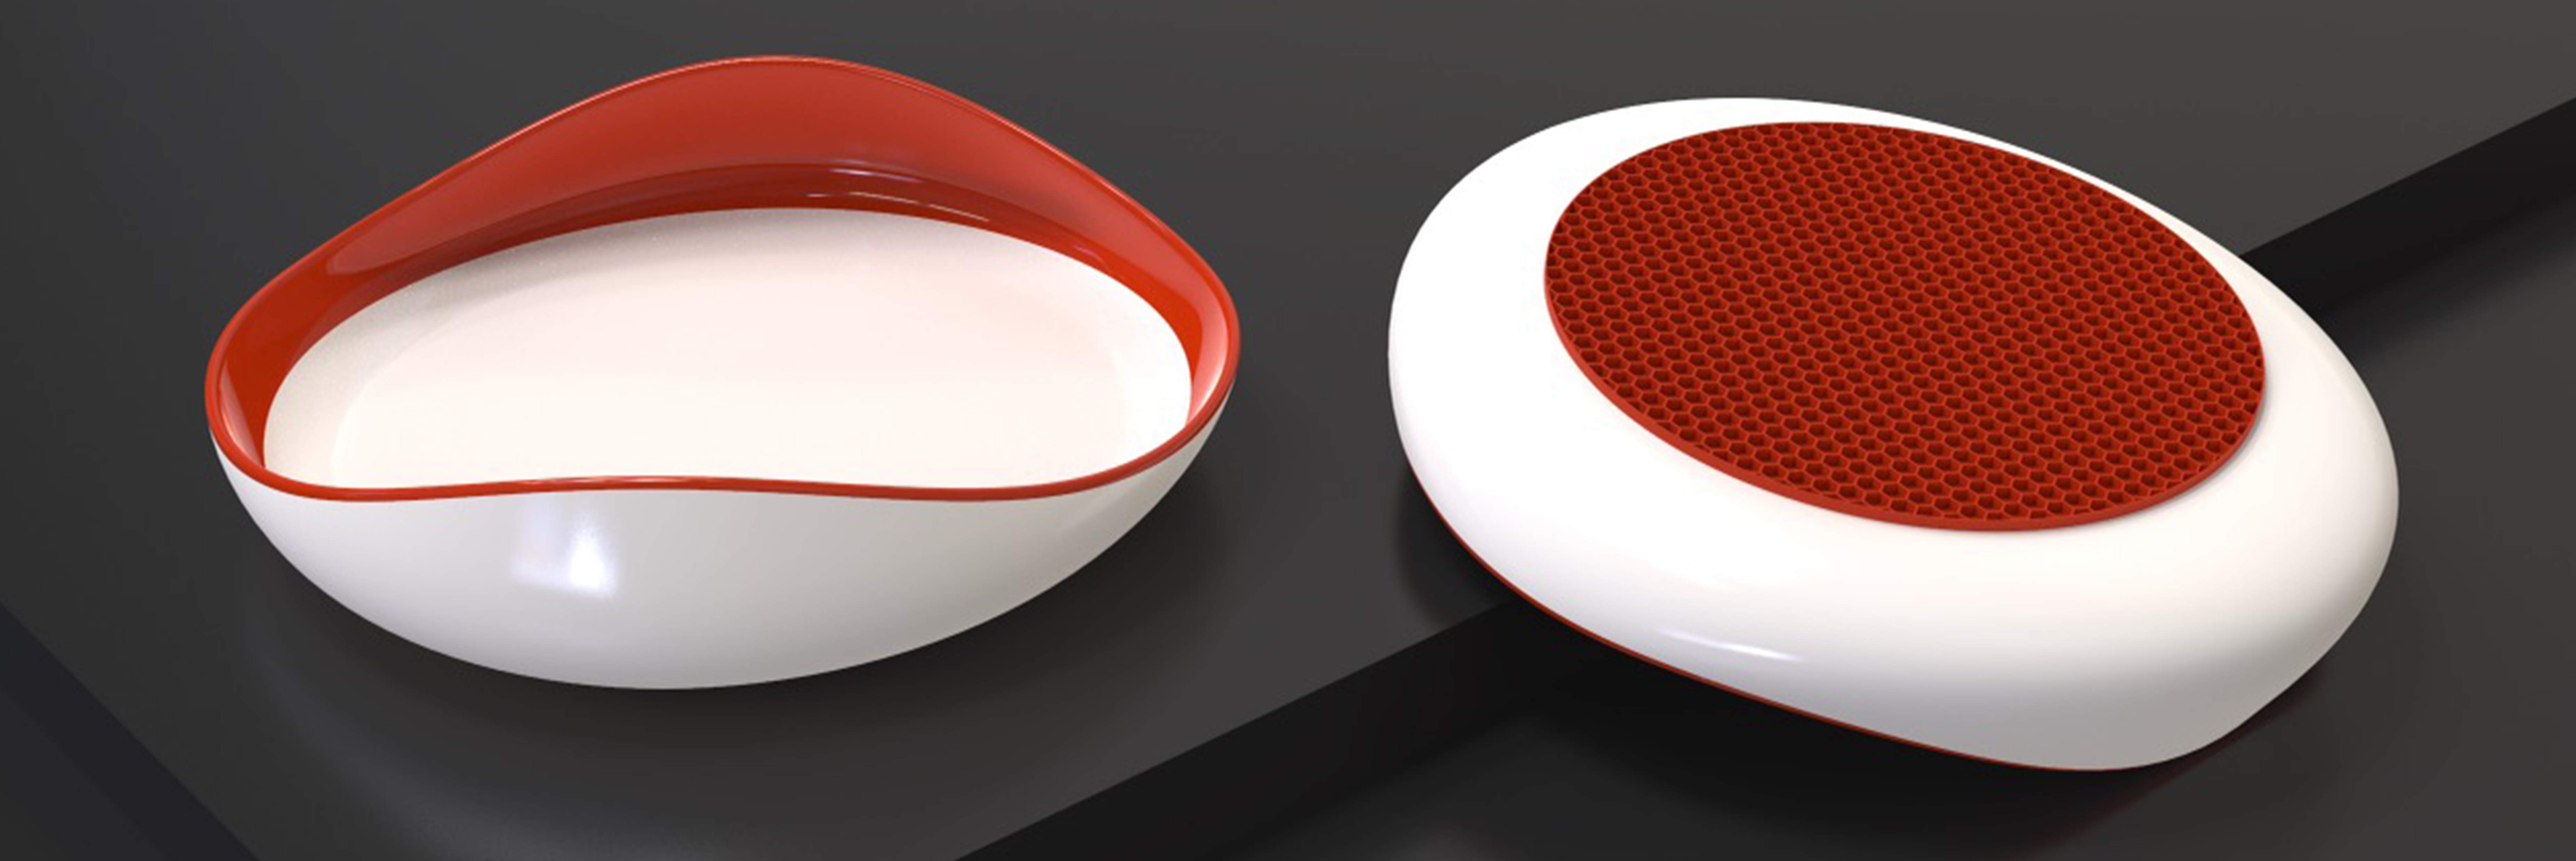 A rendering of two of the same cream coloured, irregularly shaped dishes with red accents on a black background. The dish on the left shows that the product has higher edges on two of its four sides, sloping inward, and painted with a red interior. The dish on the right shows a red patterned silicone bottom on the dish.